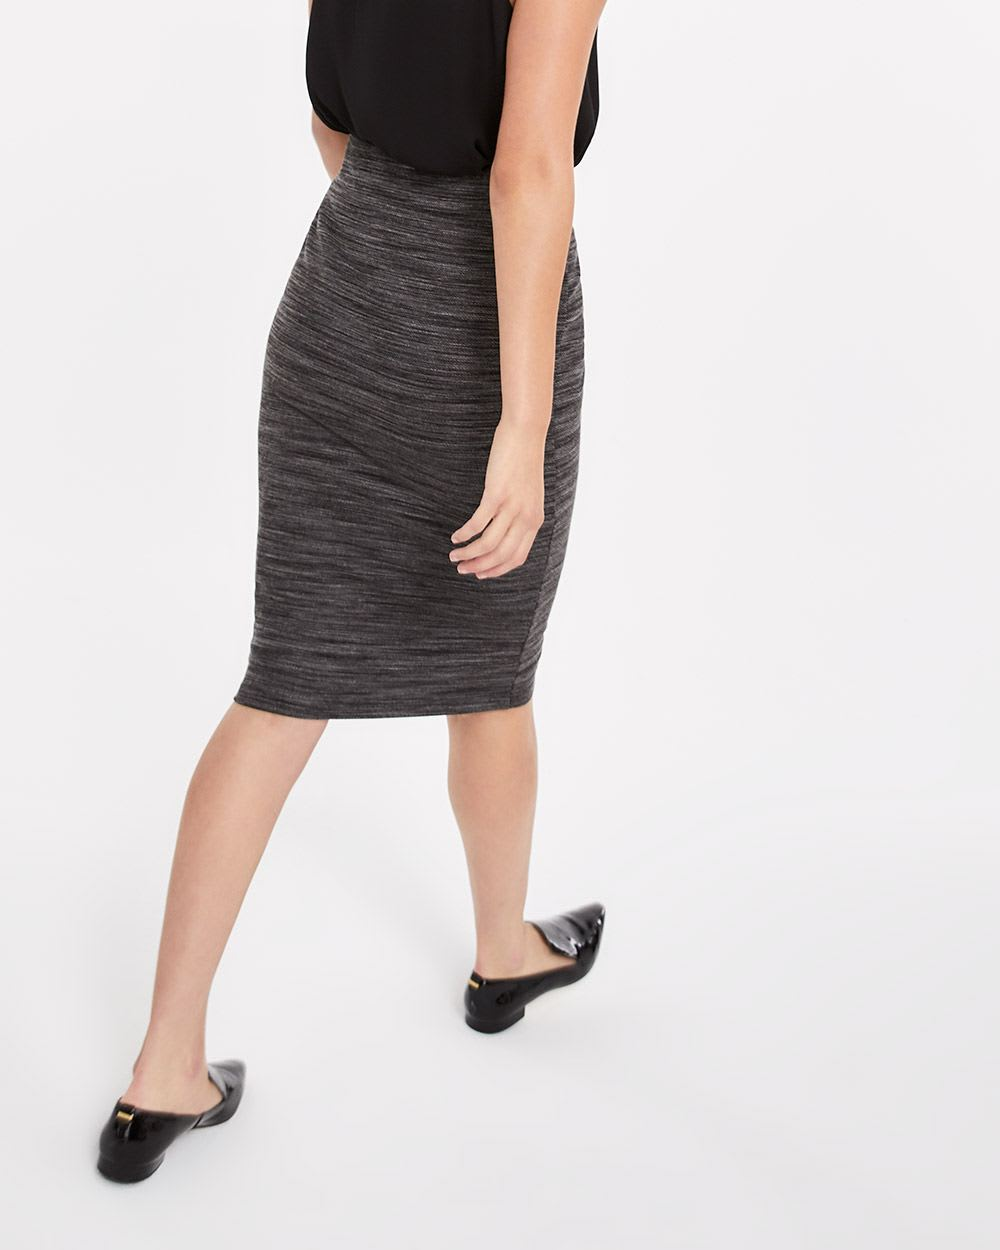 Pull On Elastic Waist Pencil Skirt